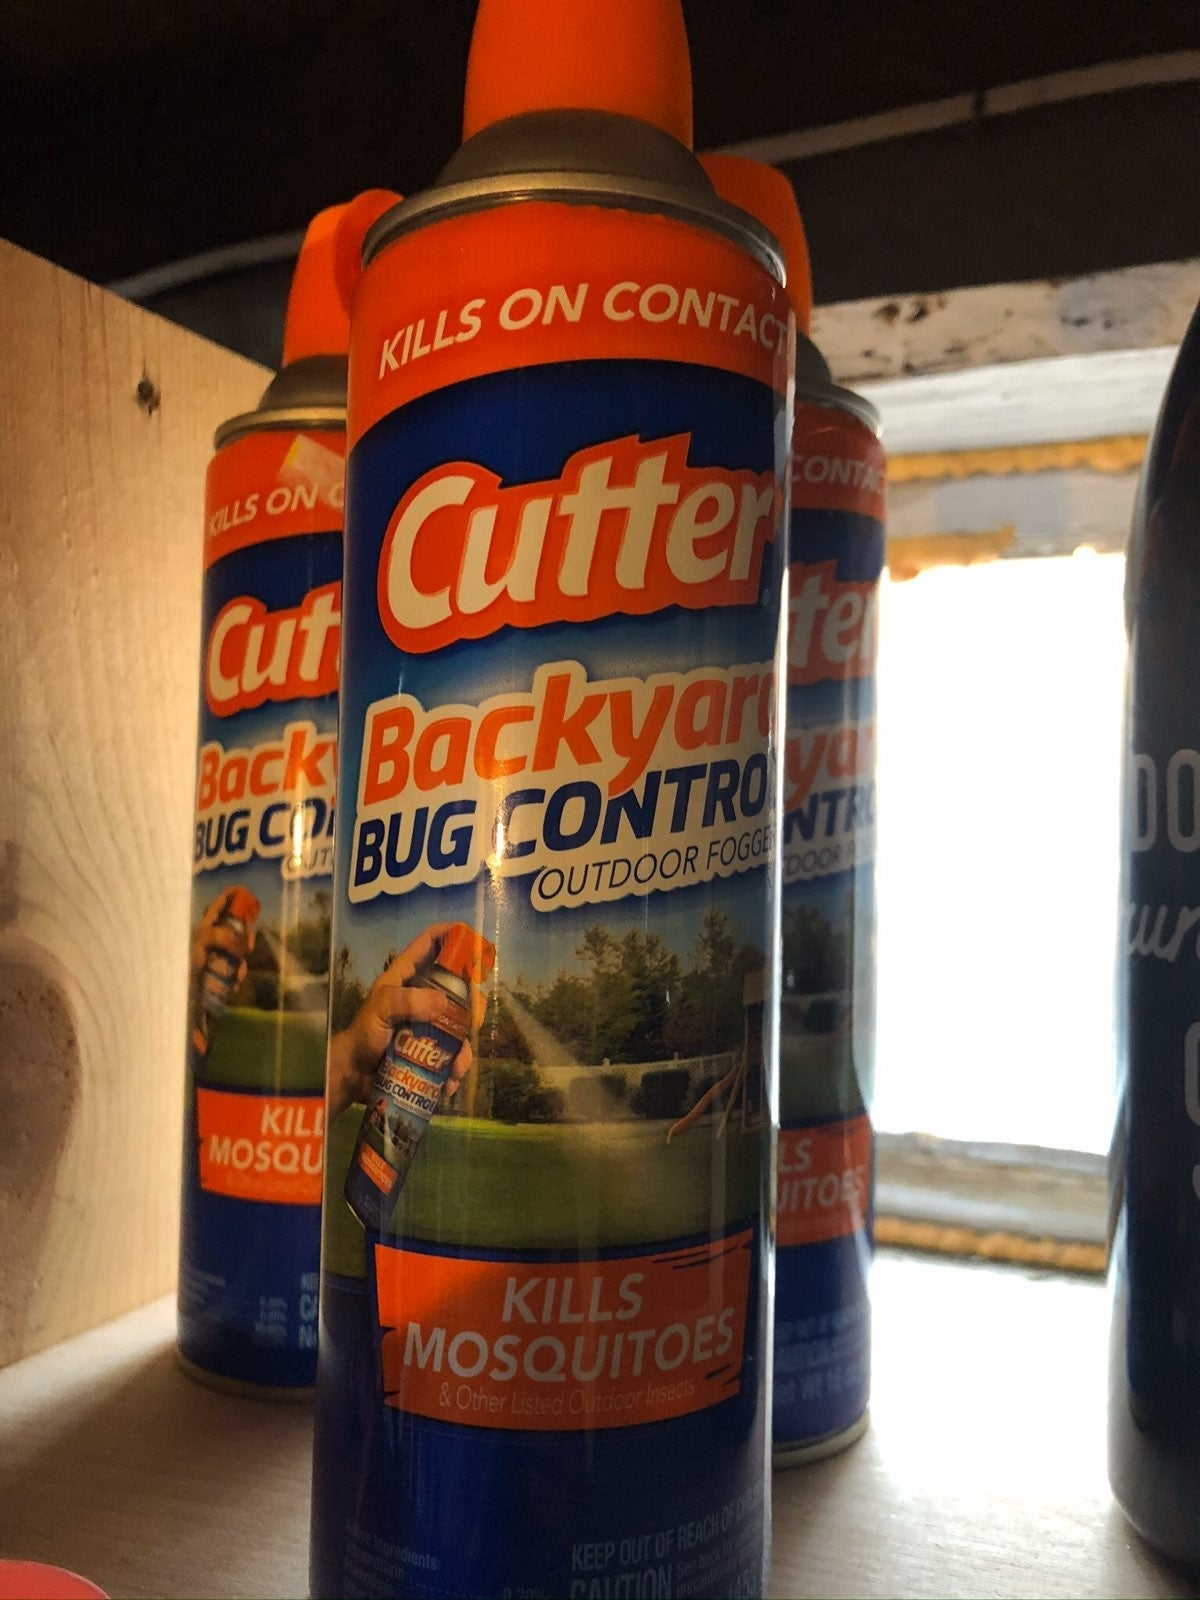 Cutter Backyard Bug Control and OFF